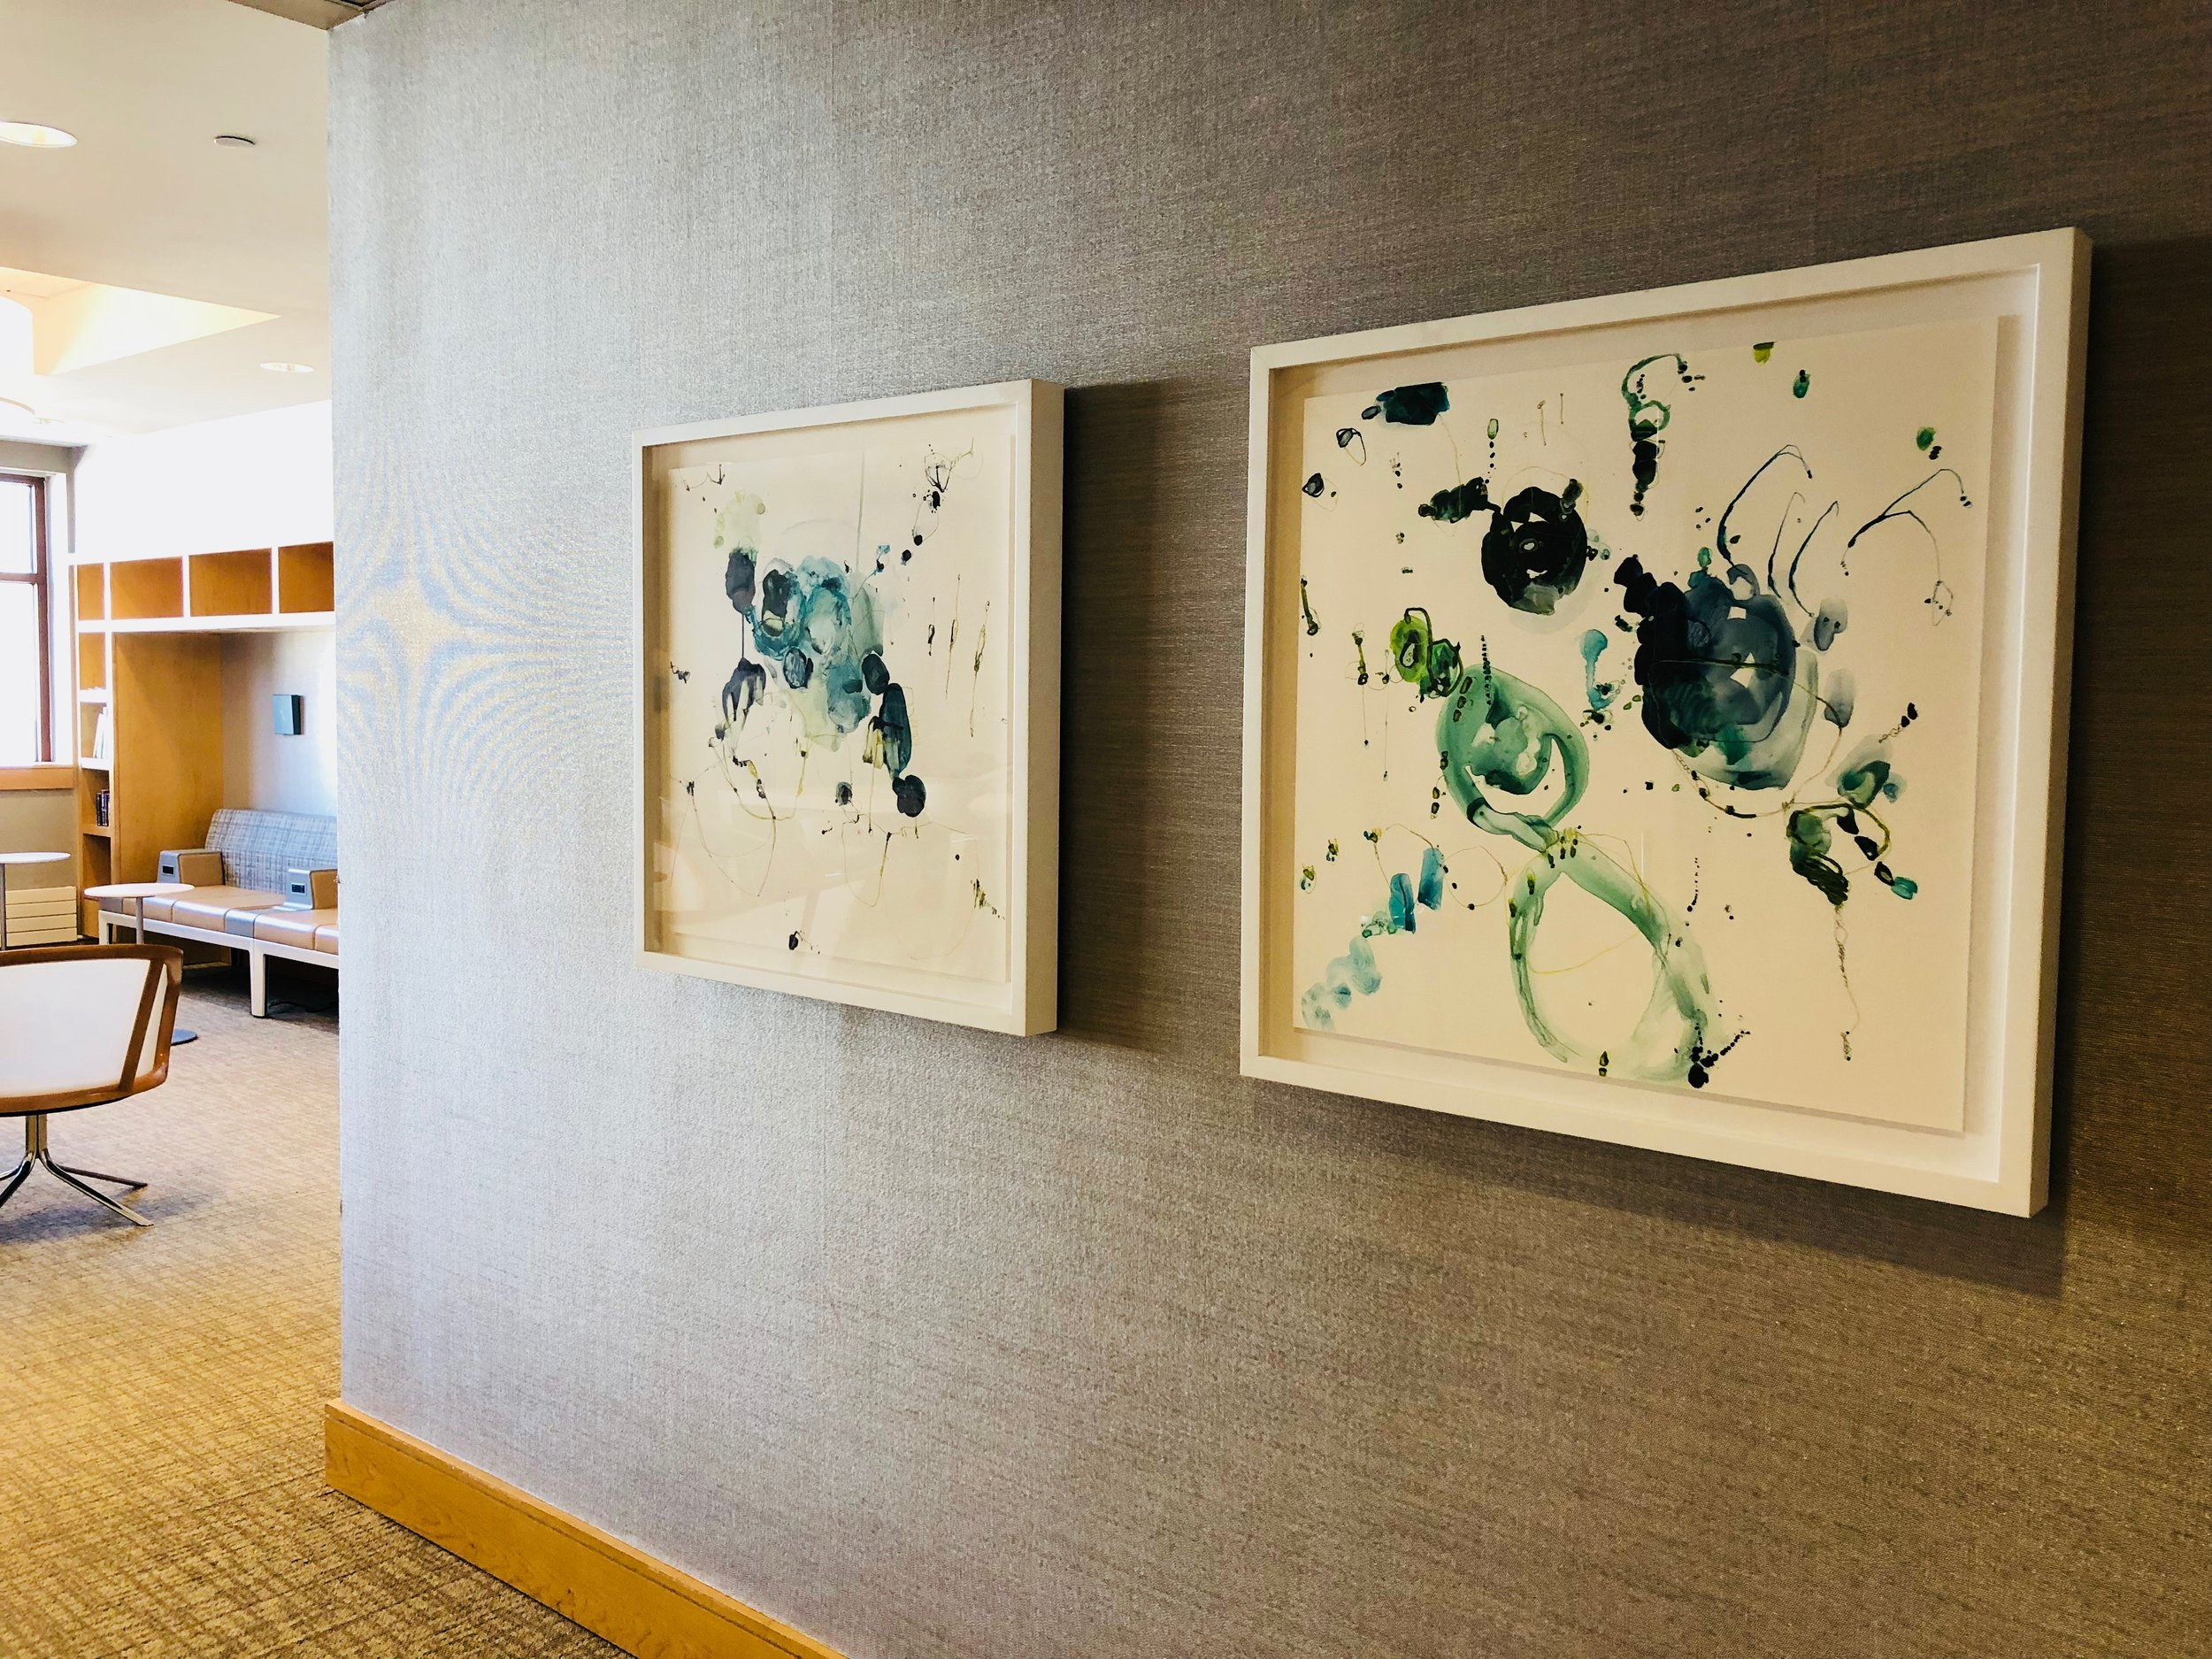 Installation View: Alison Cooley, Tidal 8179 and Tidal 8183